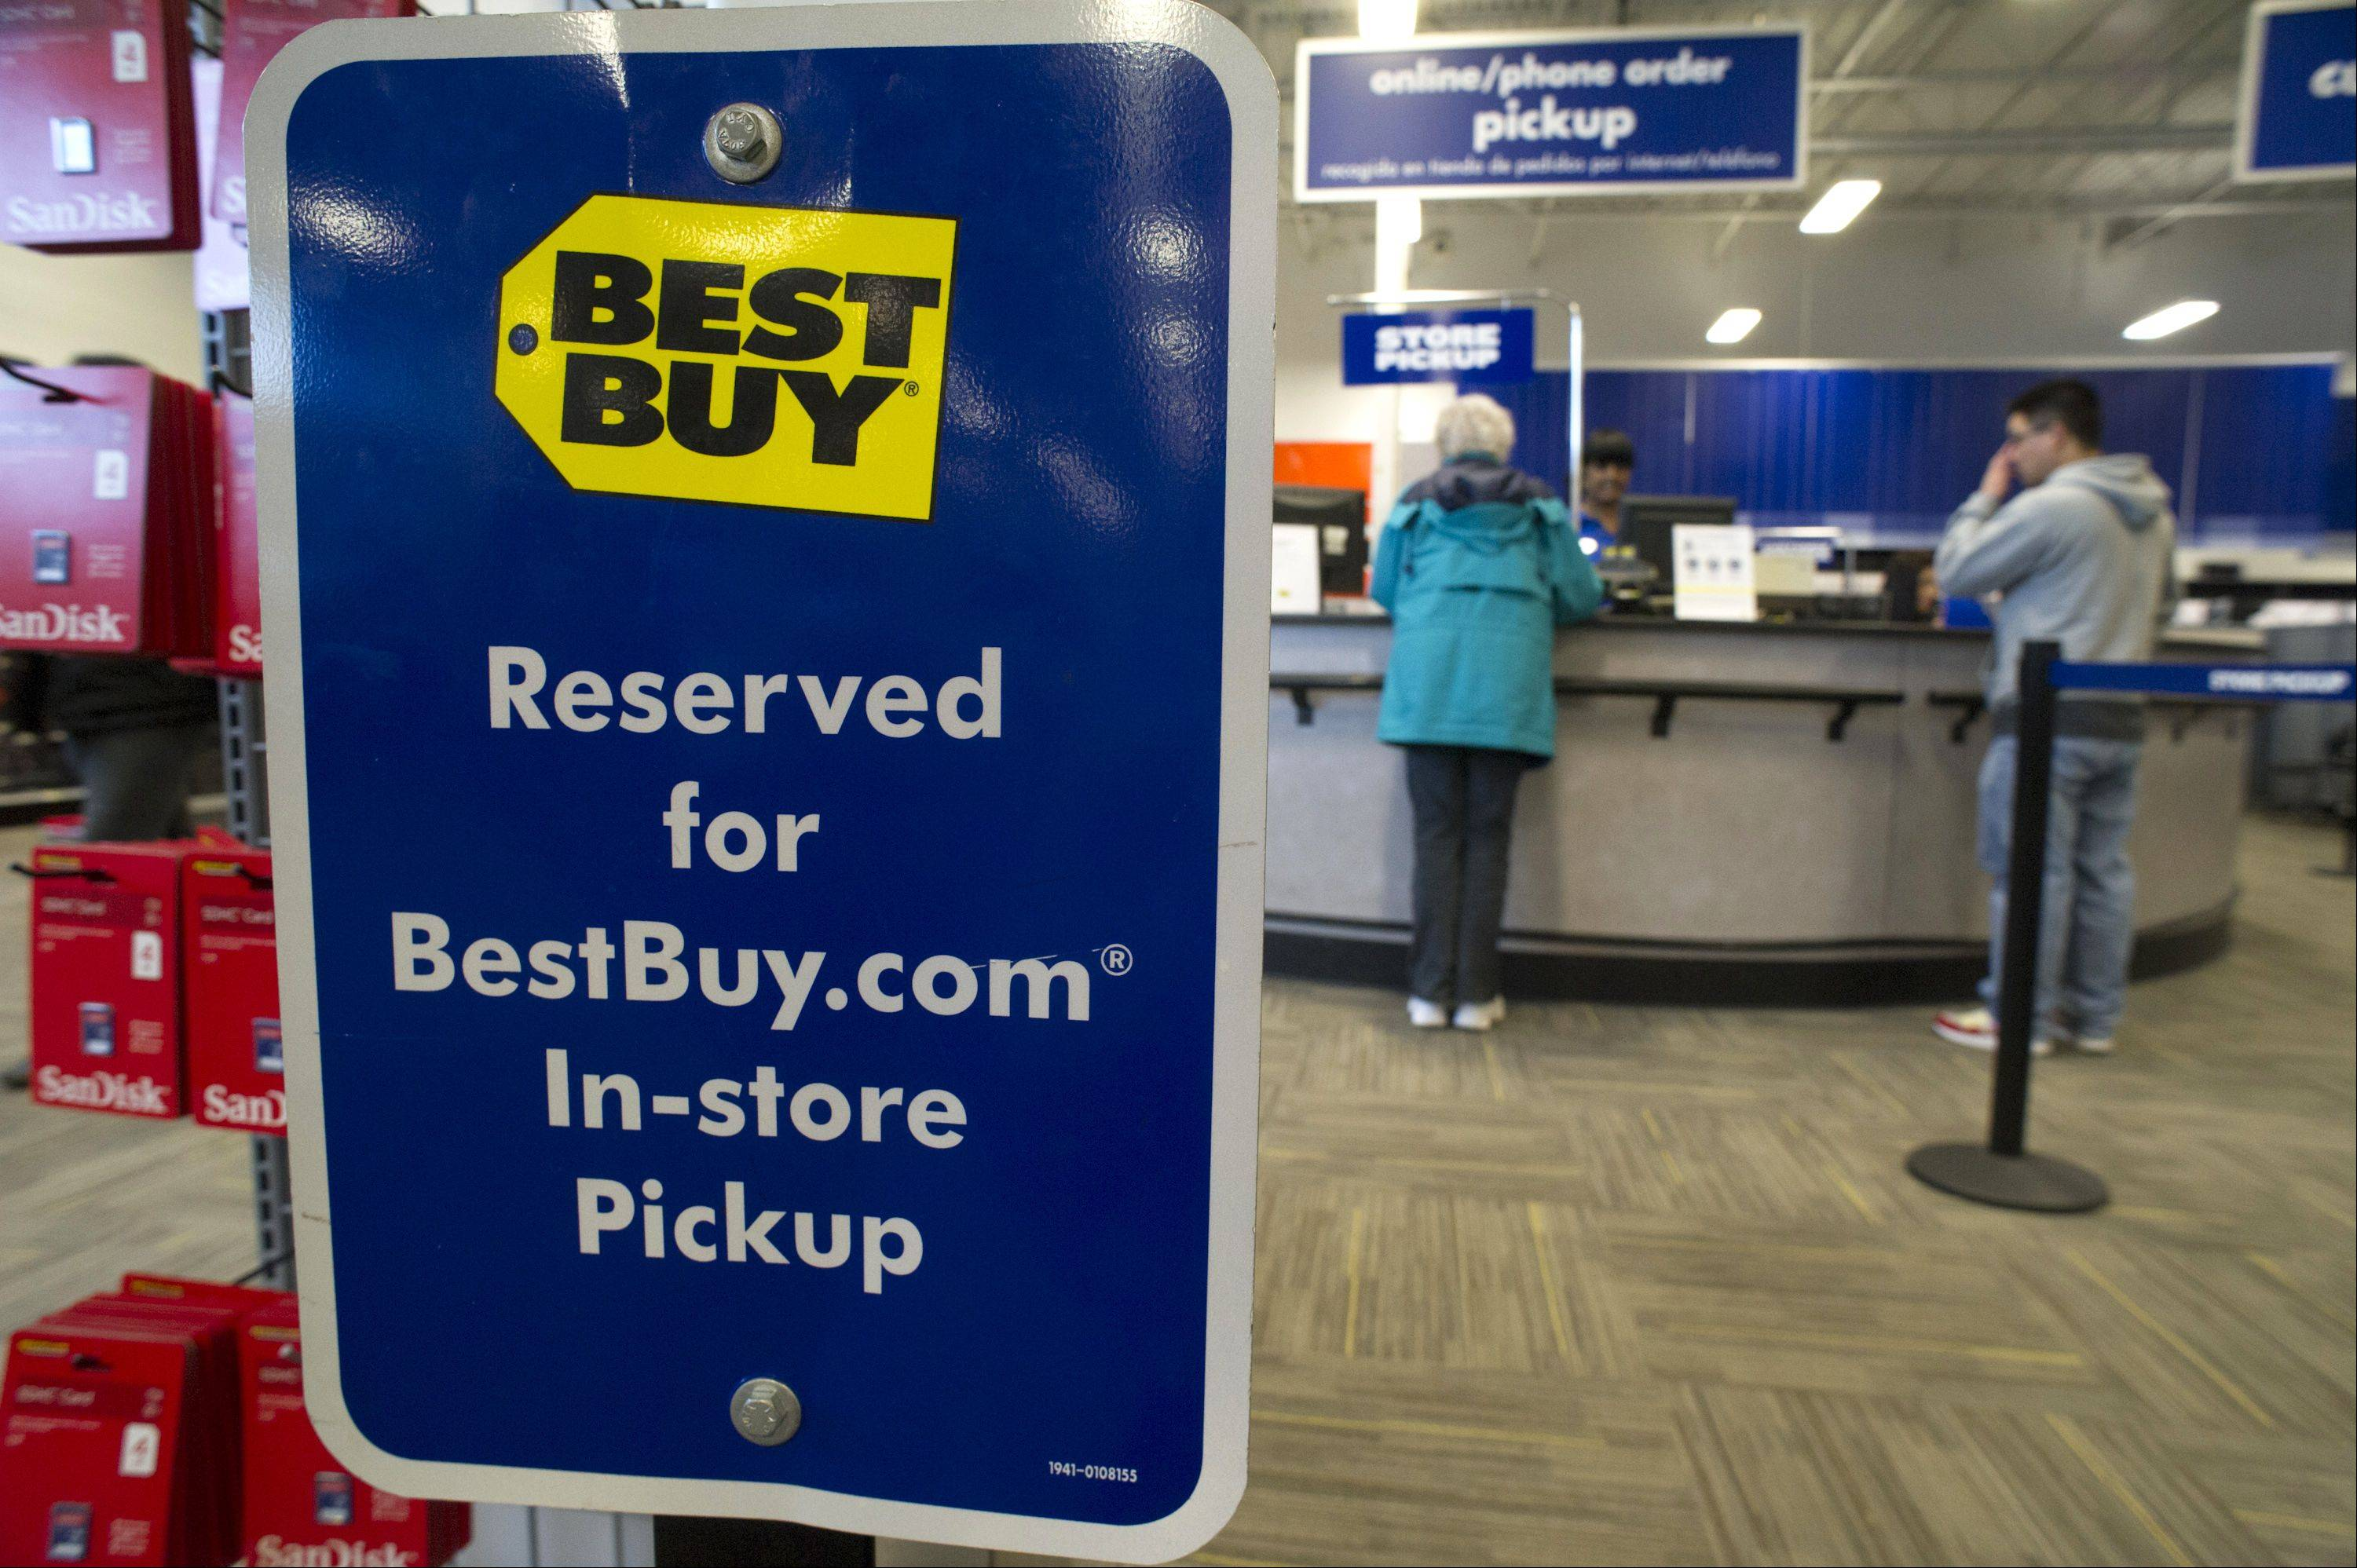 Best Buy to cut costs, open and close stores